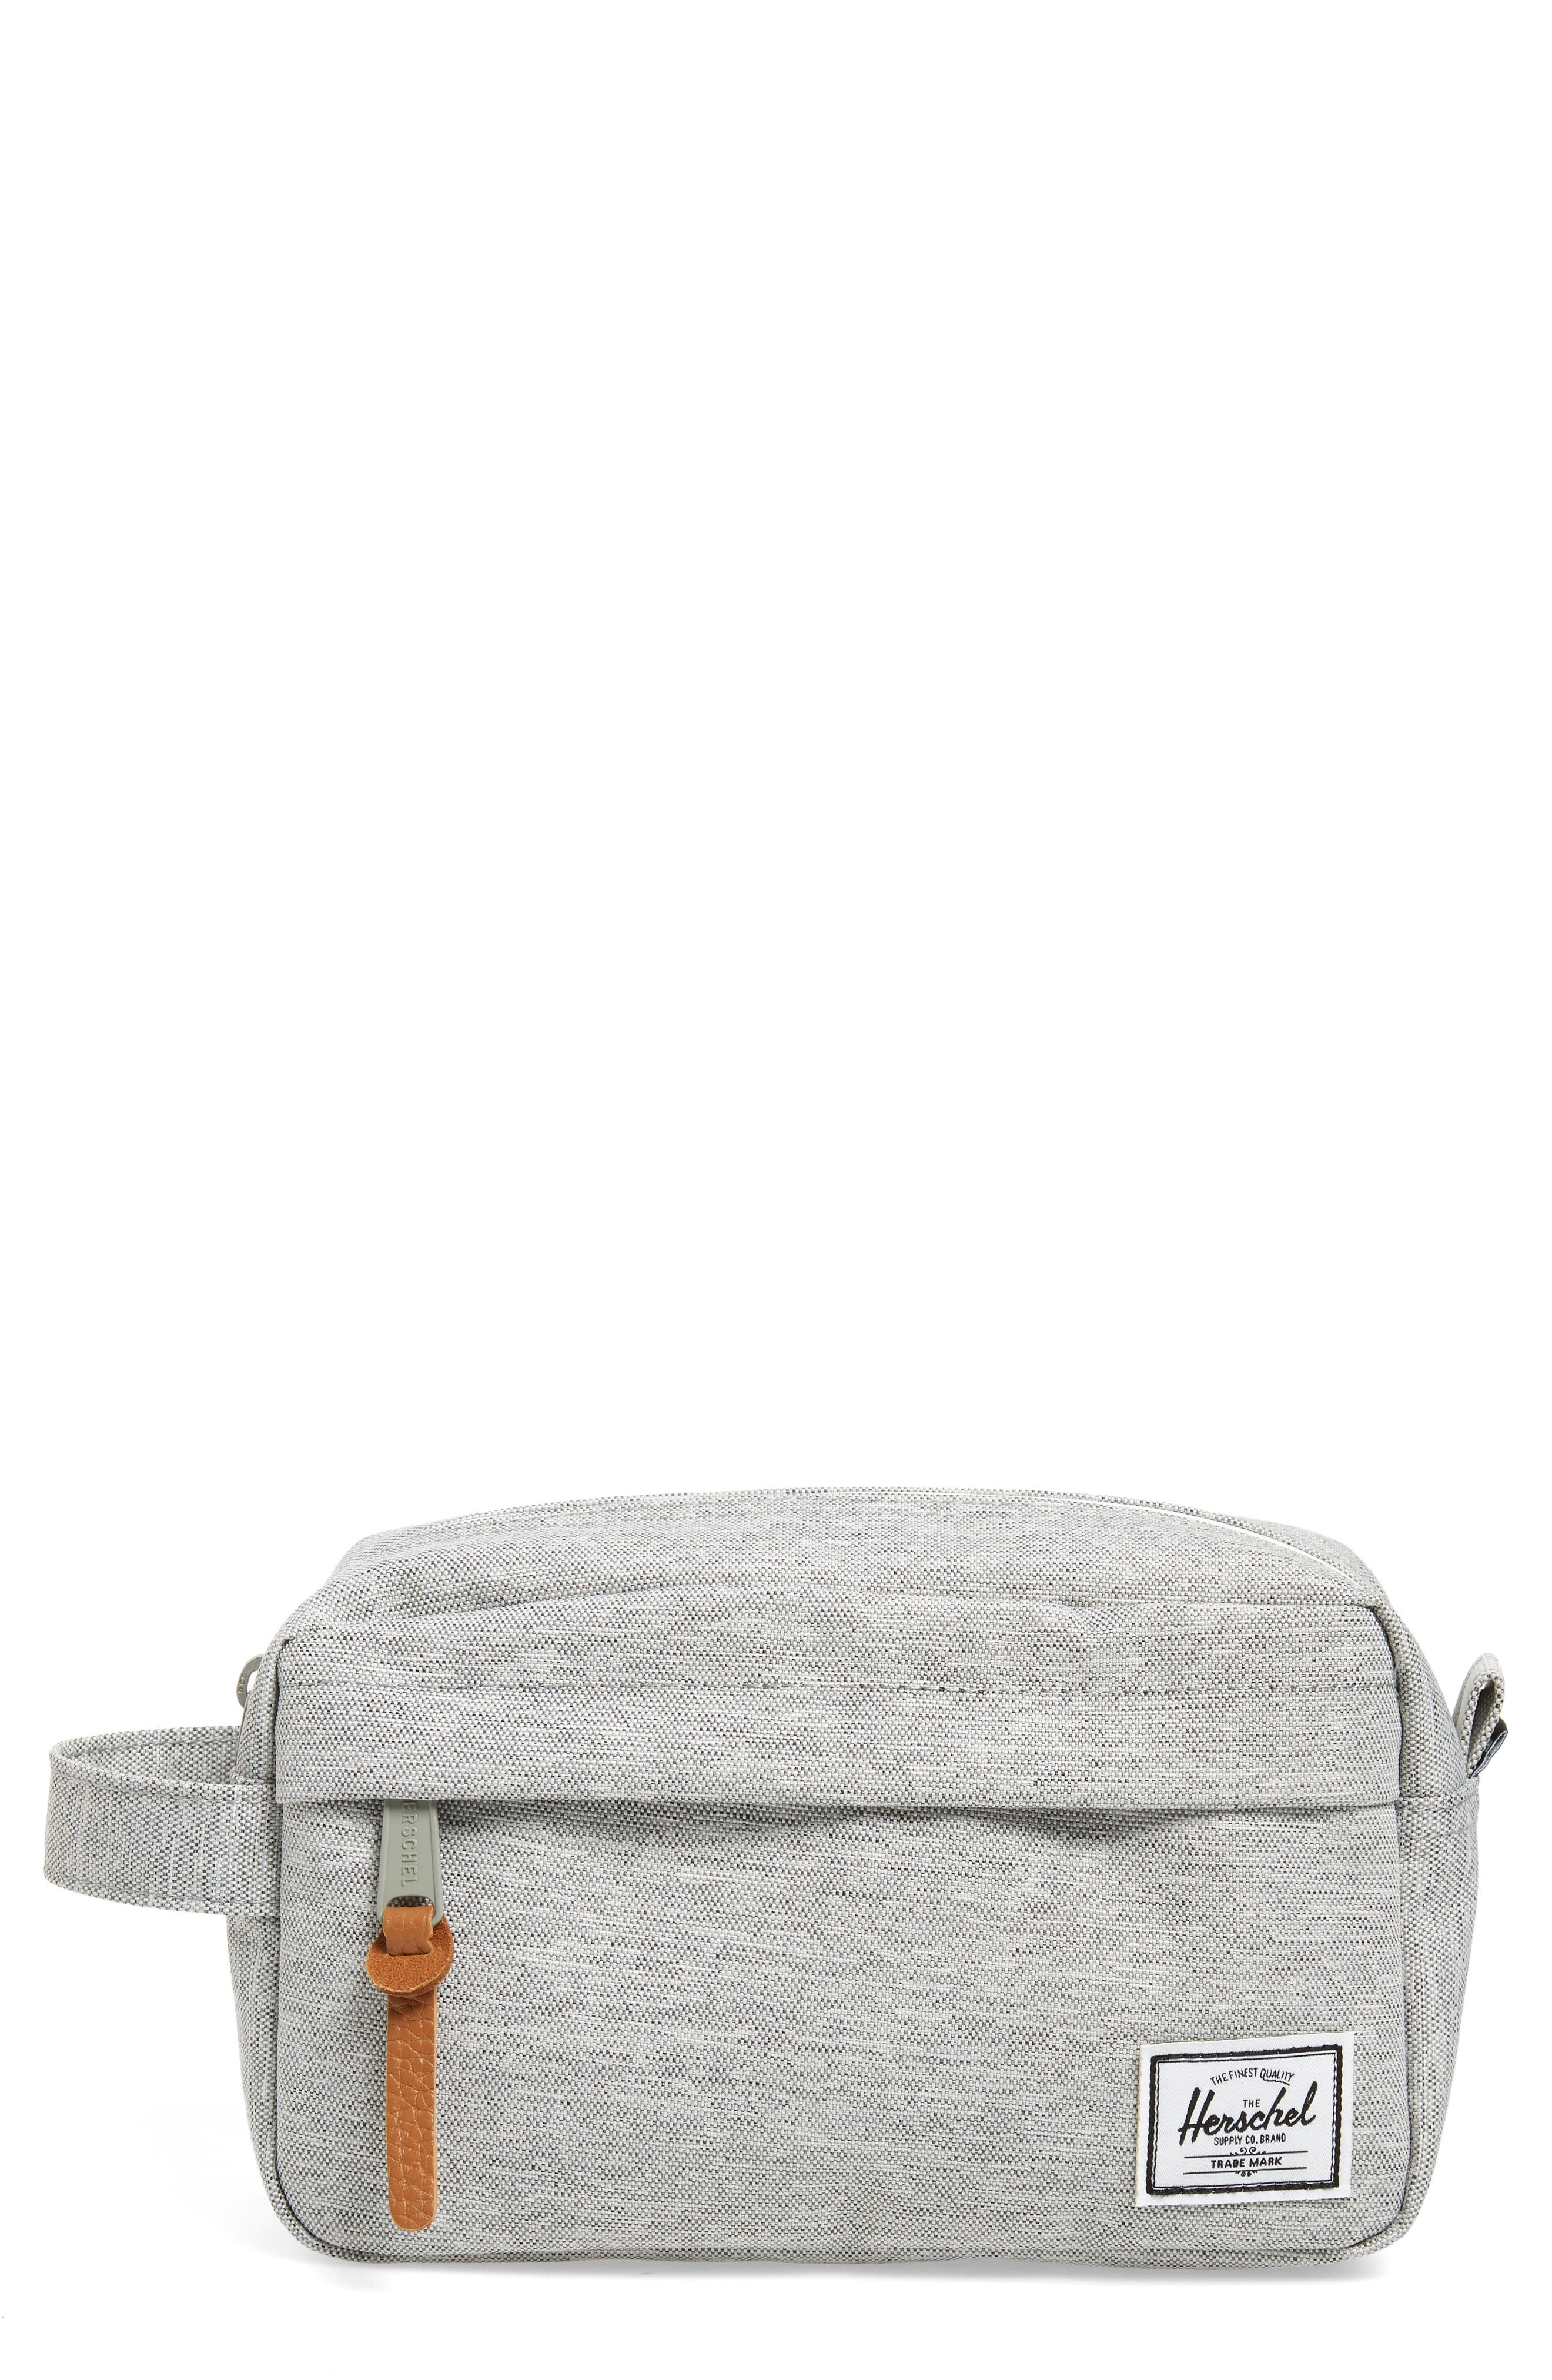 Chapter Carry-On Travel Kit,                         Main,                         color, Light Grey Crosshatch